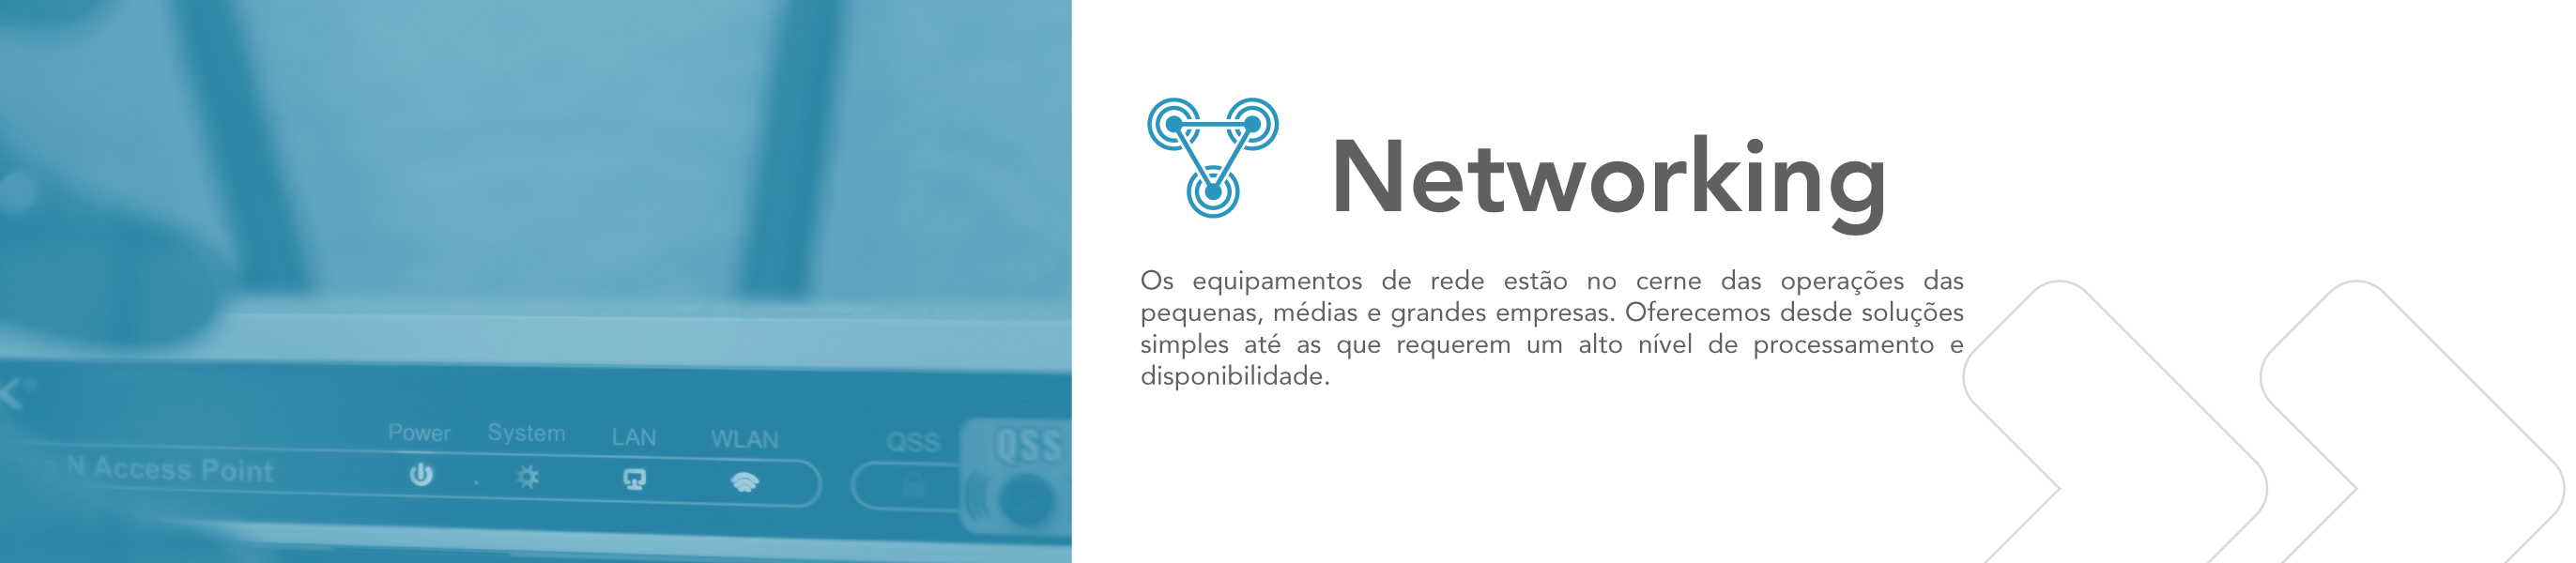 Banner networking